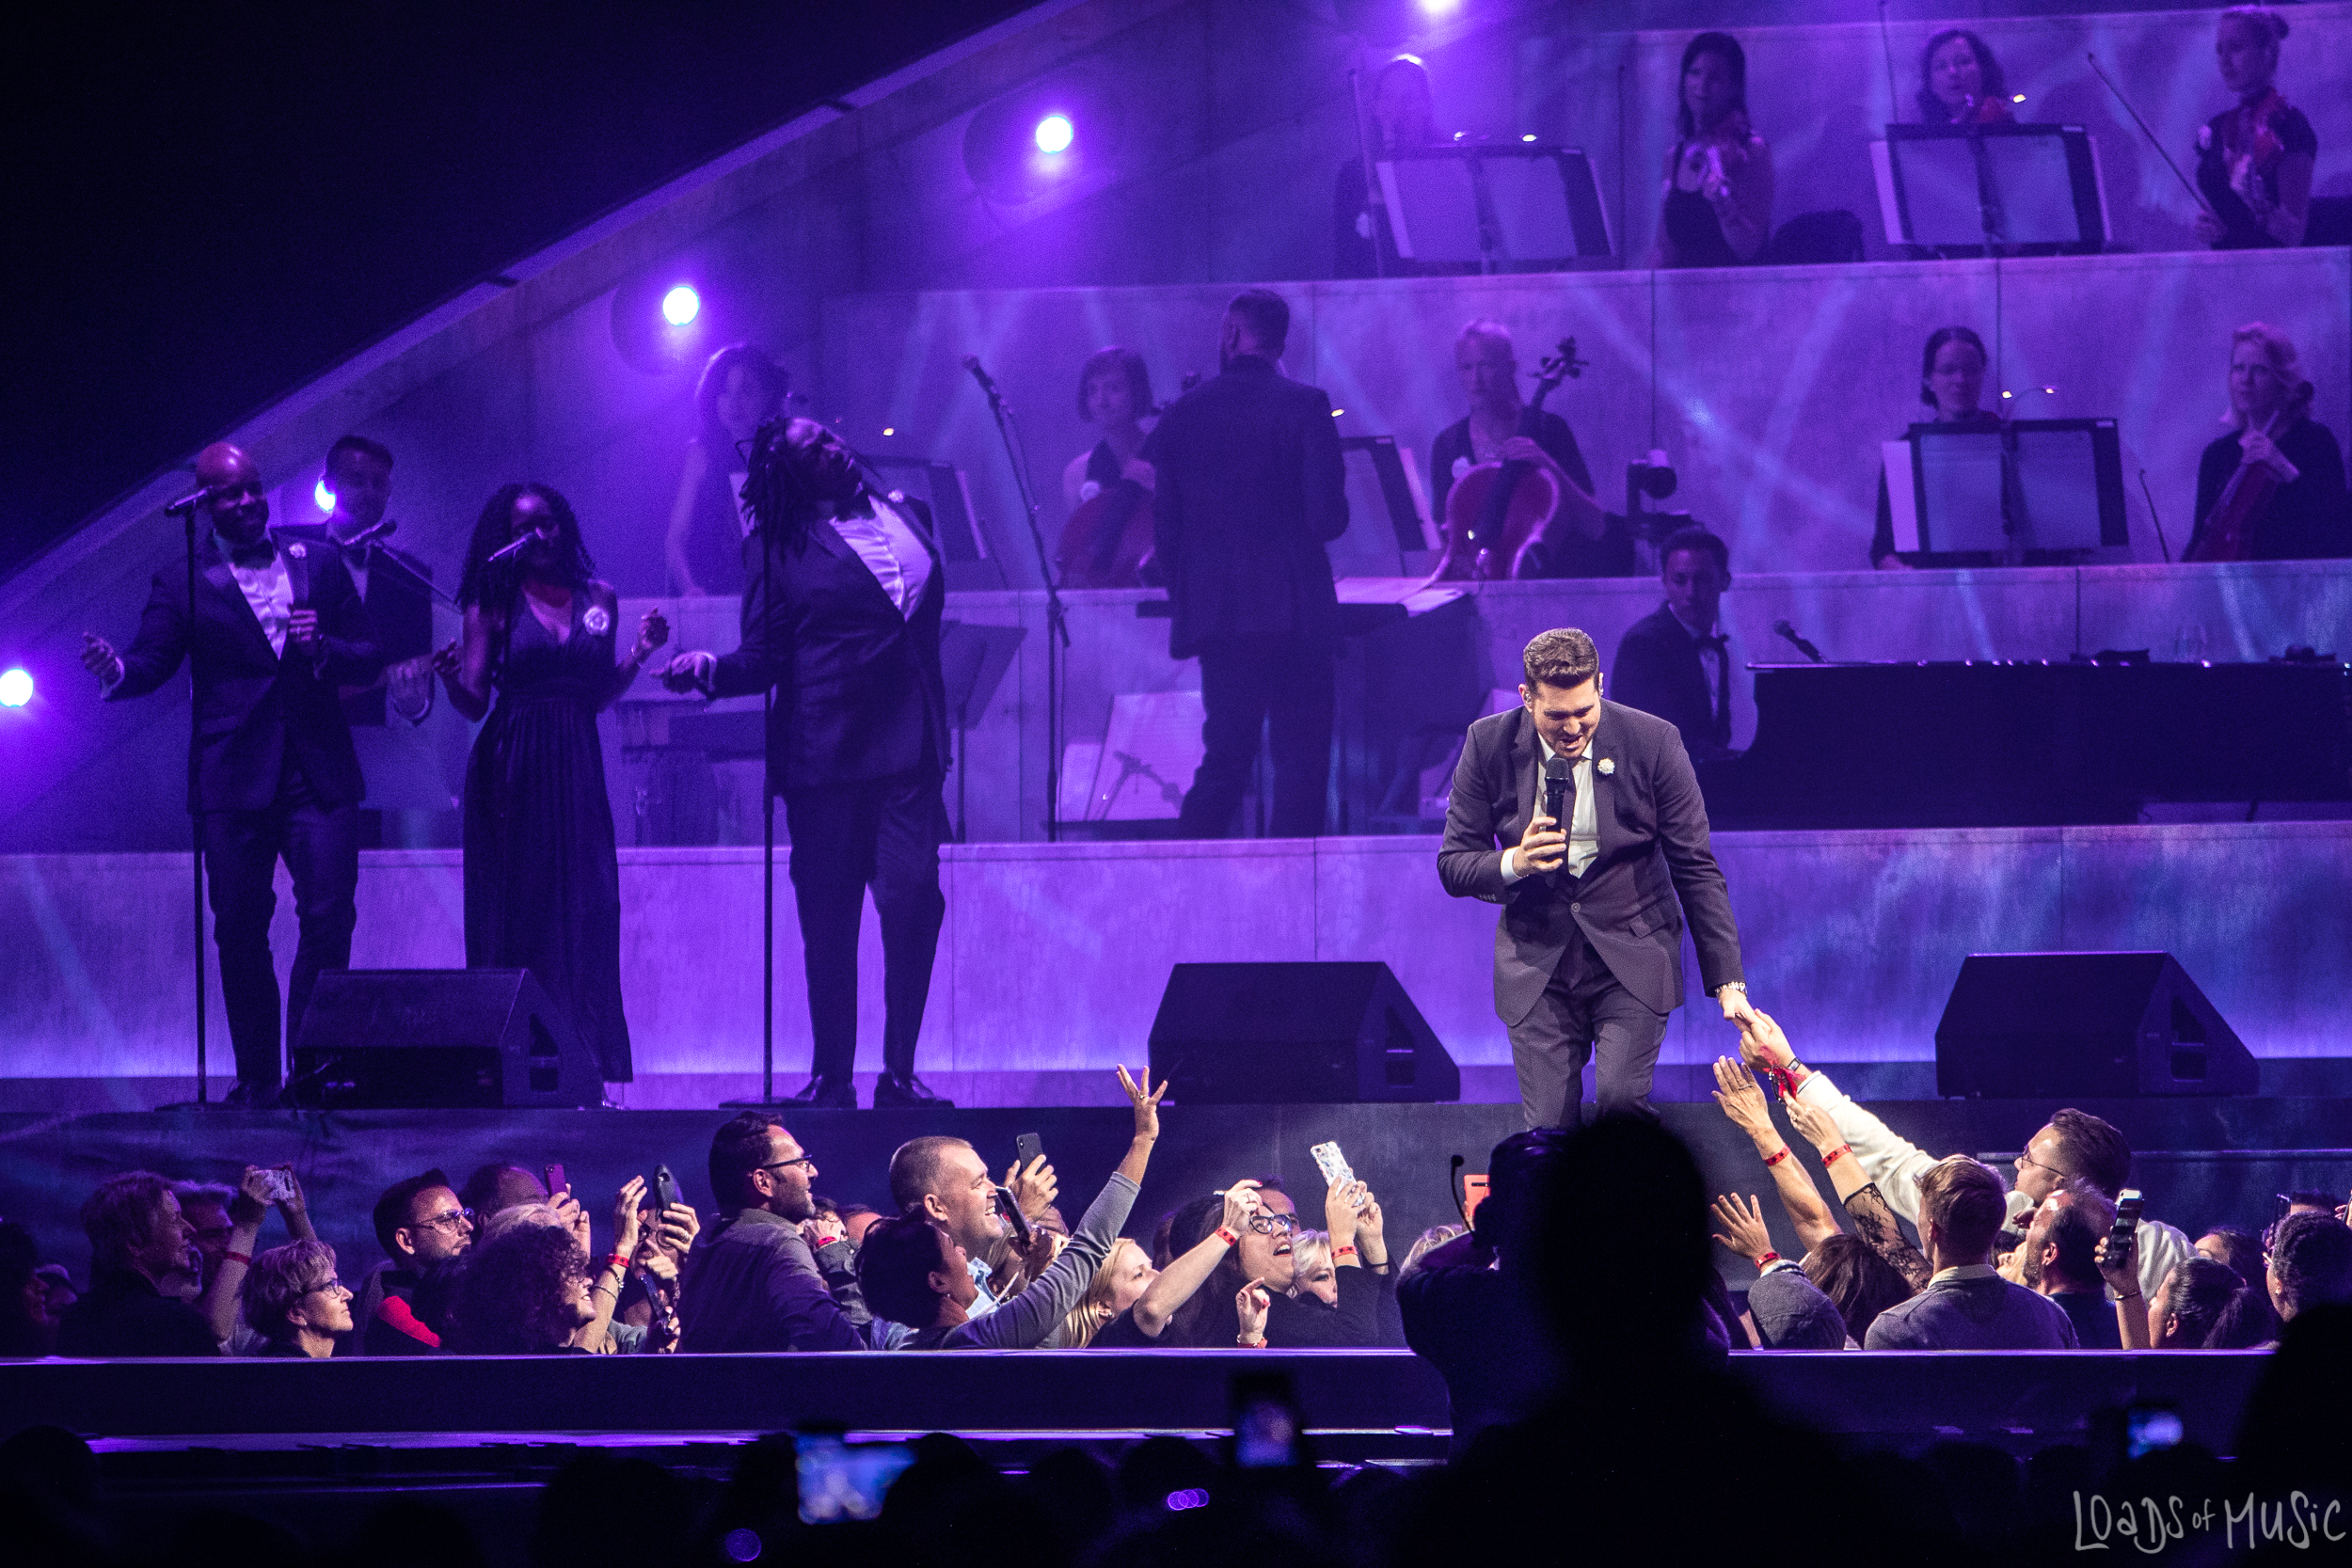 Michael_Buble_Hallenstadion_MB_5